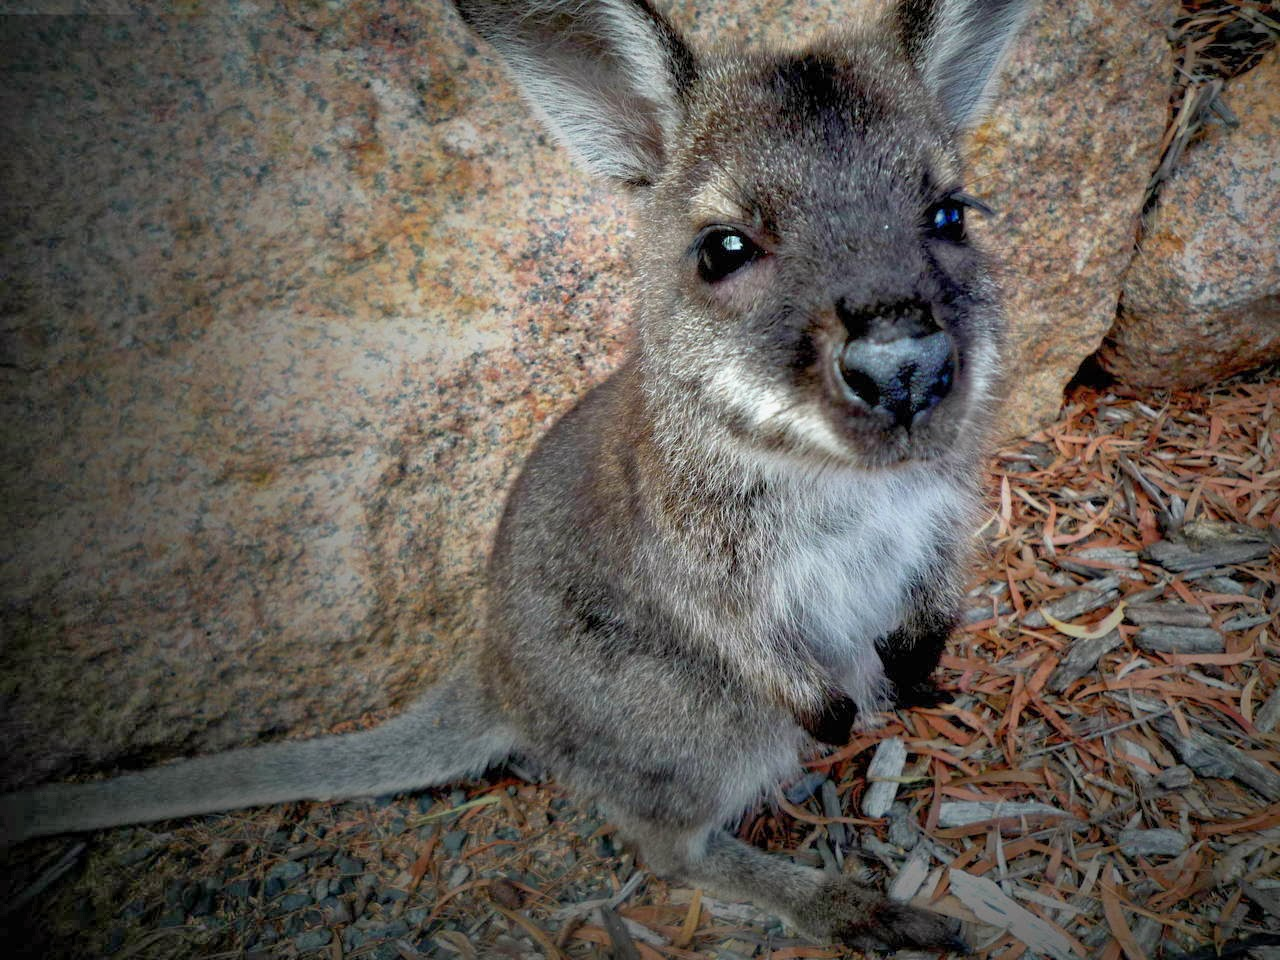 Funny animals of the week - 21 February 2014 (40 pics), baby wallaby picture